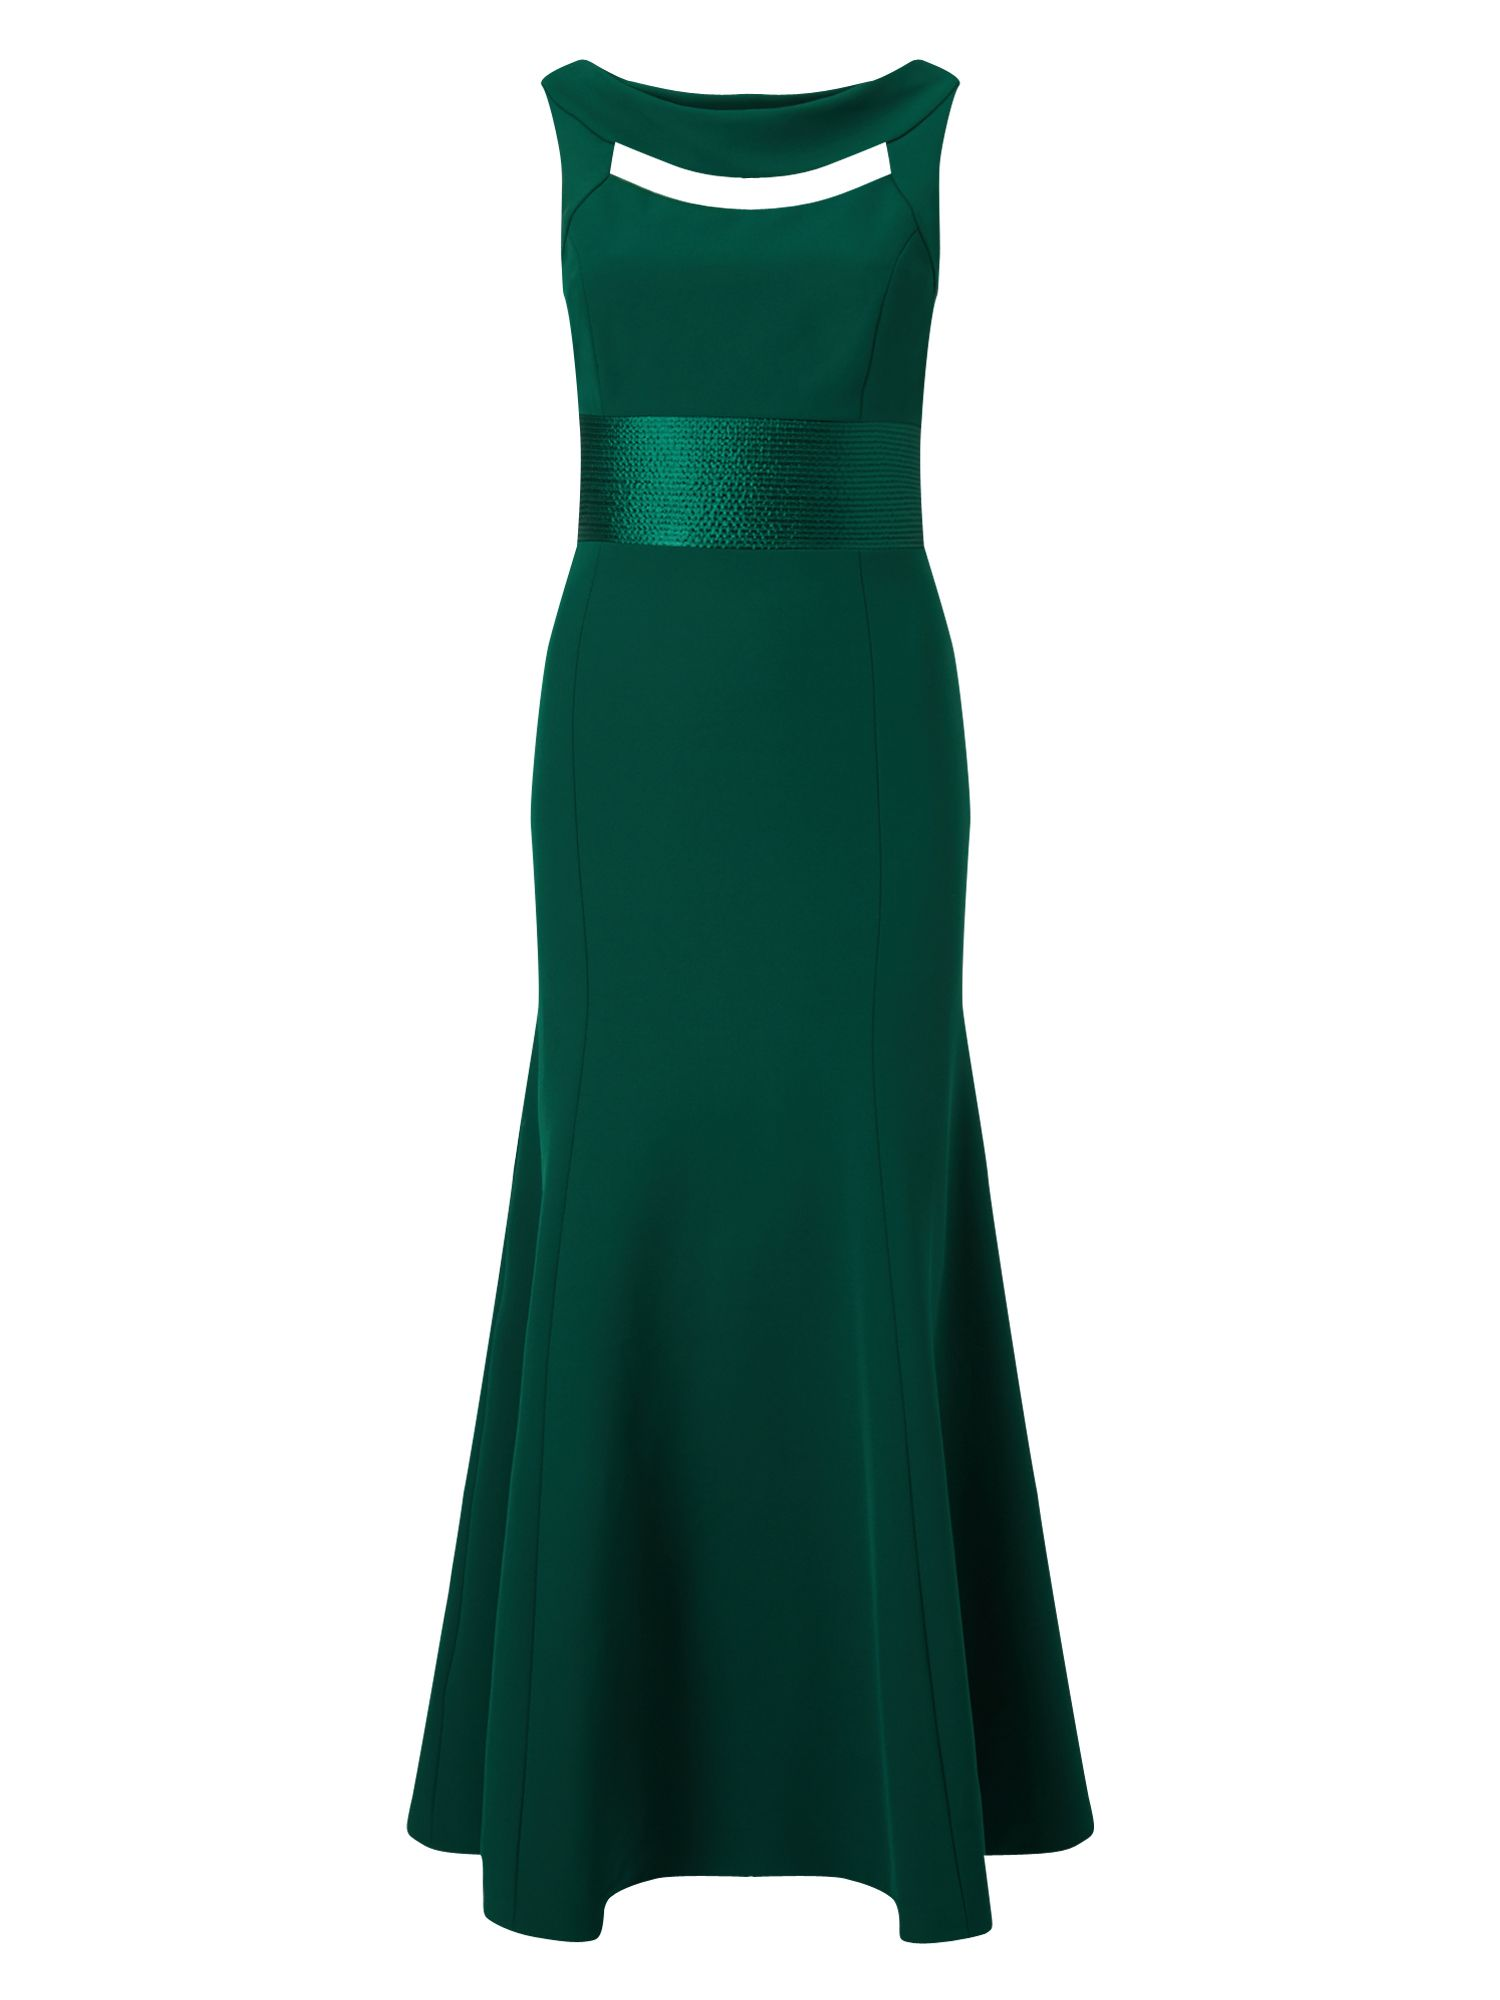 Phase eight green fishtail dress images